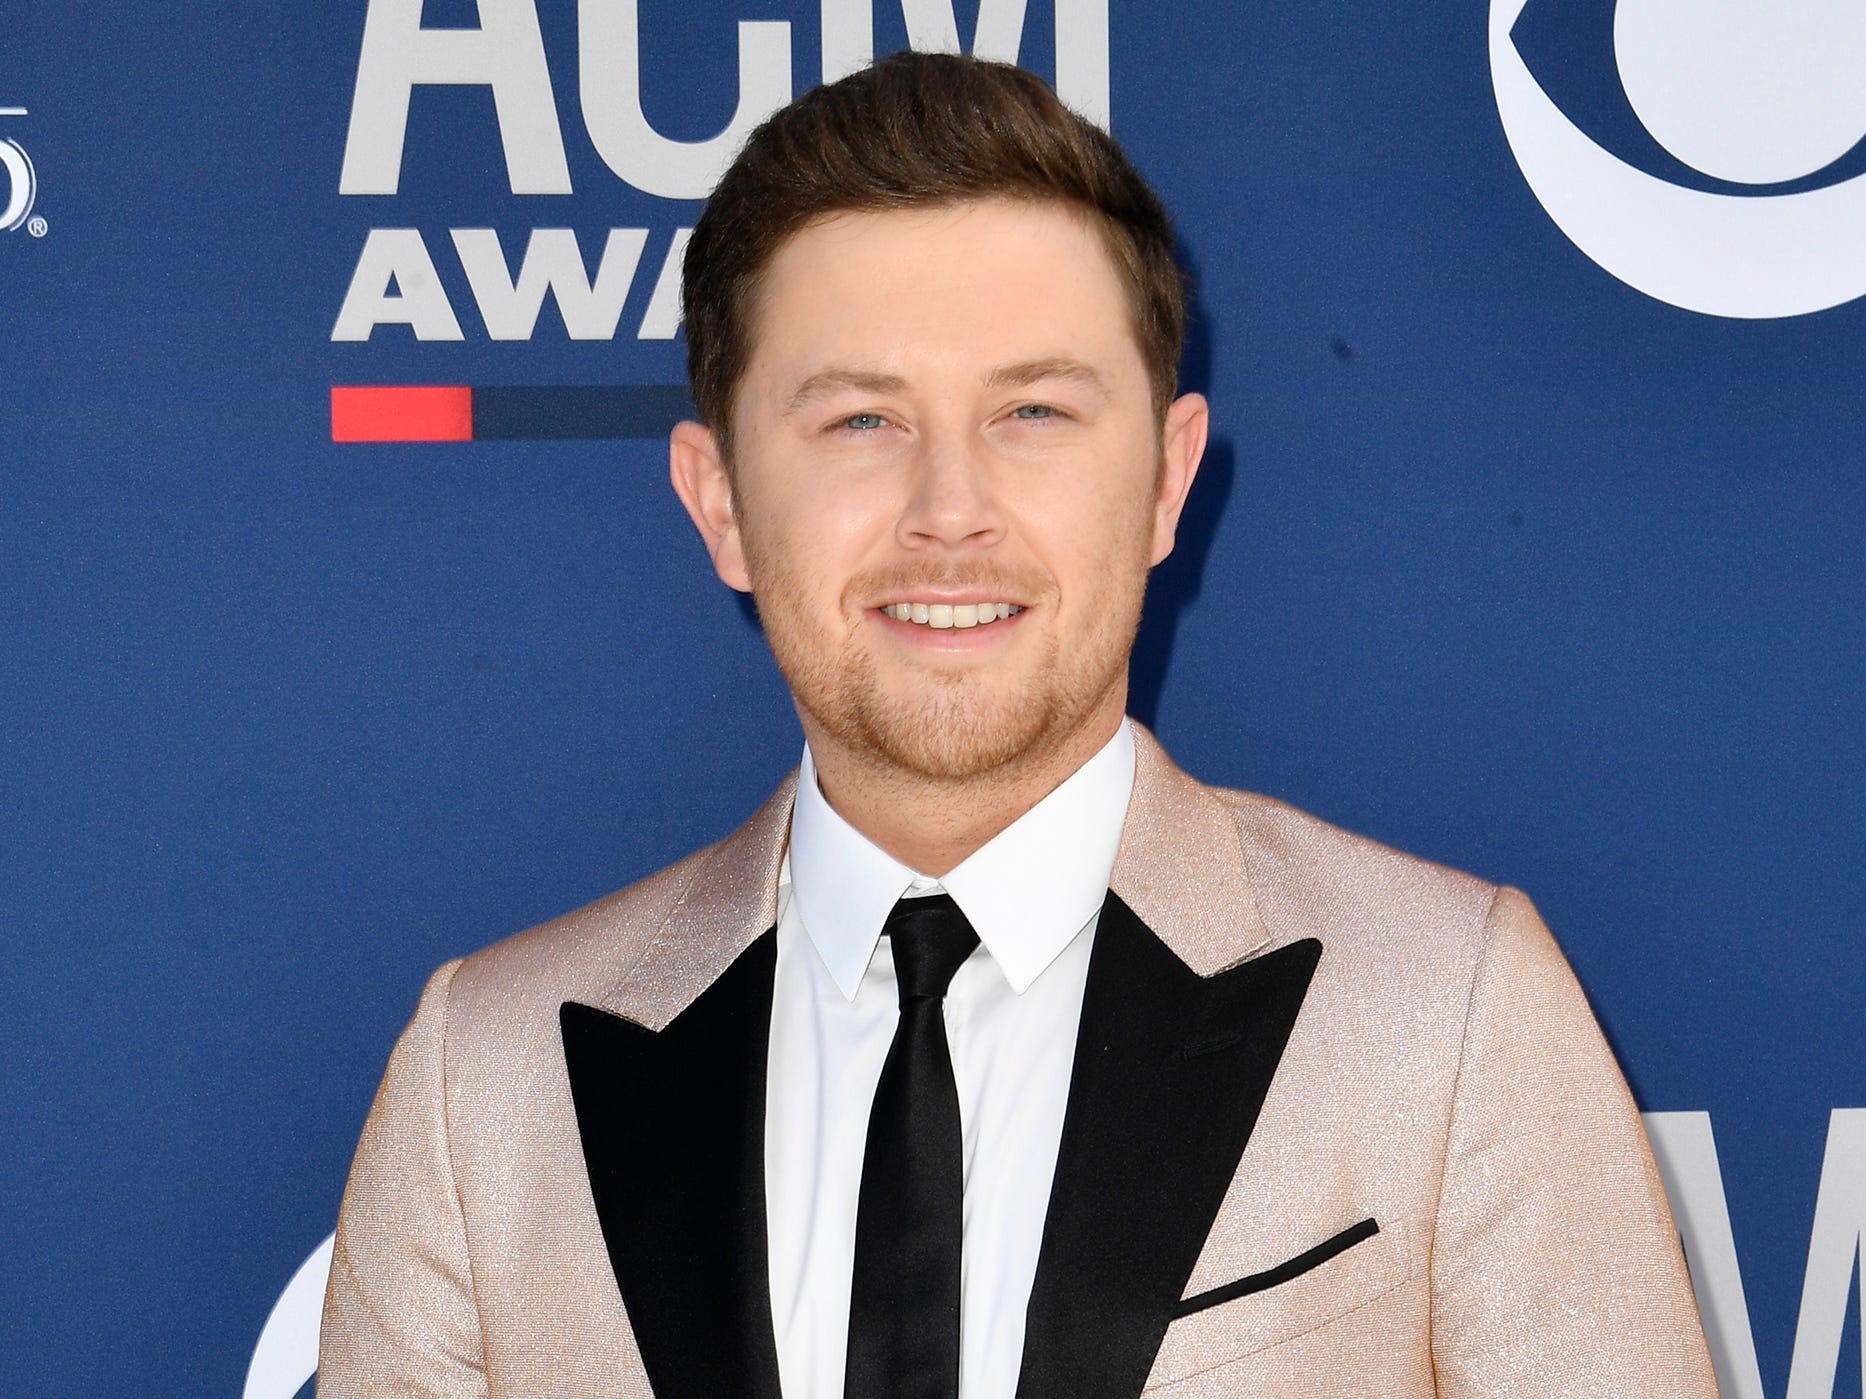 Scotty McCreery walks the red carpet at the 54TH Academy of Country Music Awards Sunday, April 7, 2019, in Las Vegas, Nev.